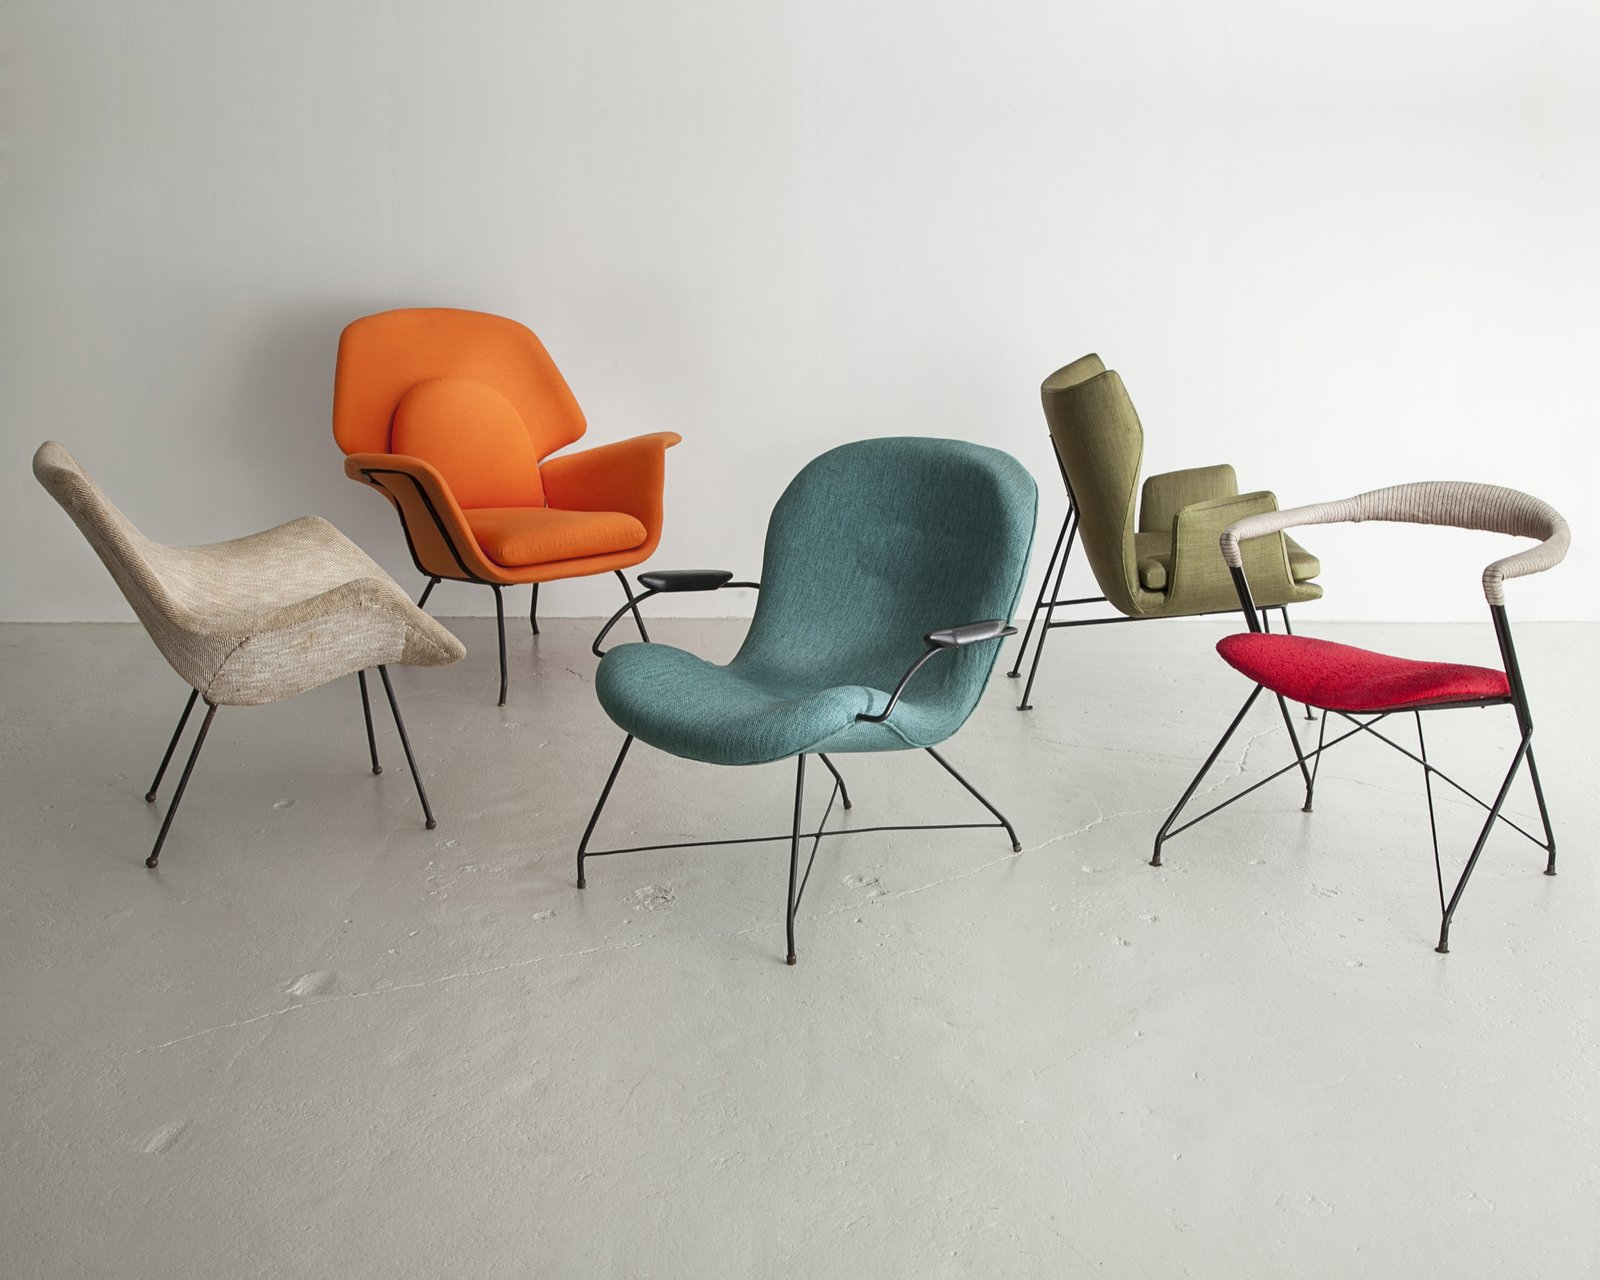 Where as many designers and architects created highly handcrafted pieces of furniture, Martin Eisler and Carlo Hauner developed Brazilian design by venturing into mass-production with their company Forma. These lounge chairs were produced by Forma in Brazil during the 1950s and 1960s.  100+ Best Modern Seating Designs by Dwell from Bring the Best of Brazilian Modernism to Your Home with This New Book